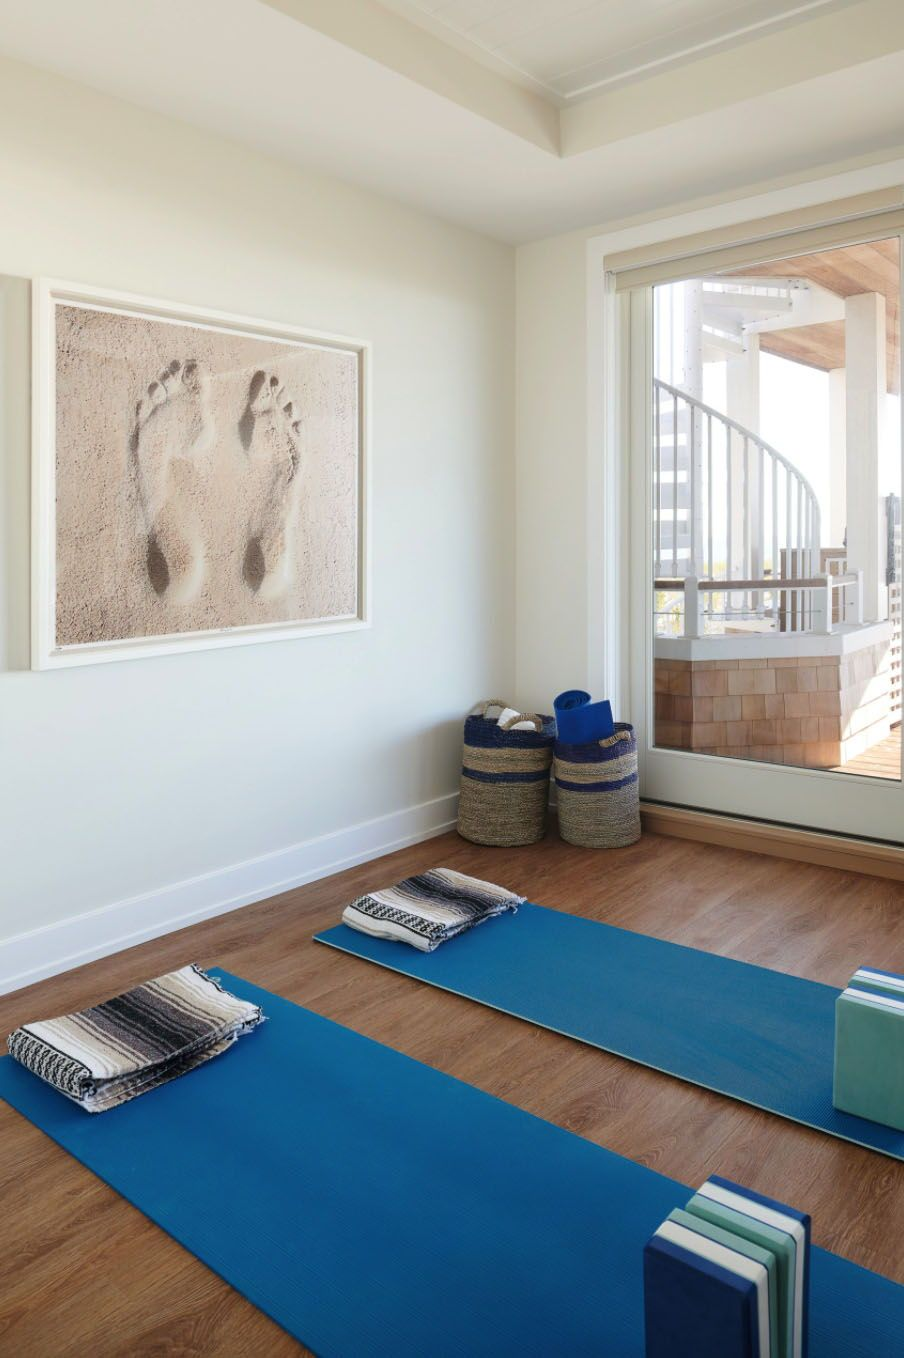 15 Amazing Home Yoga Studio Ideas For Relaxation And